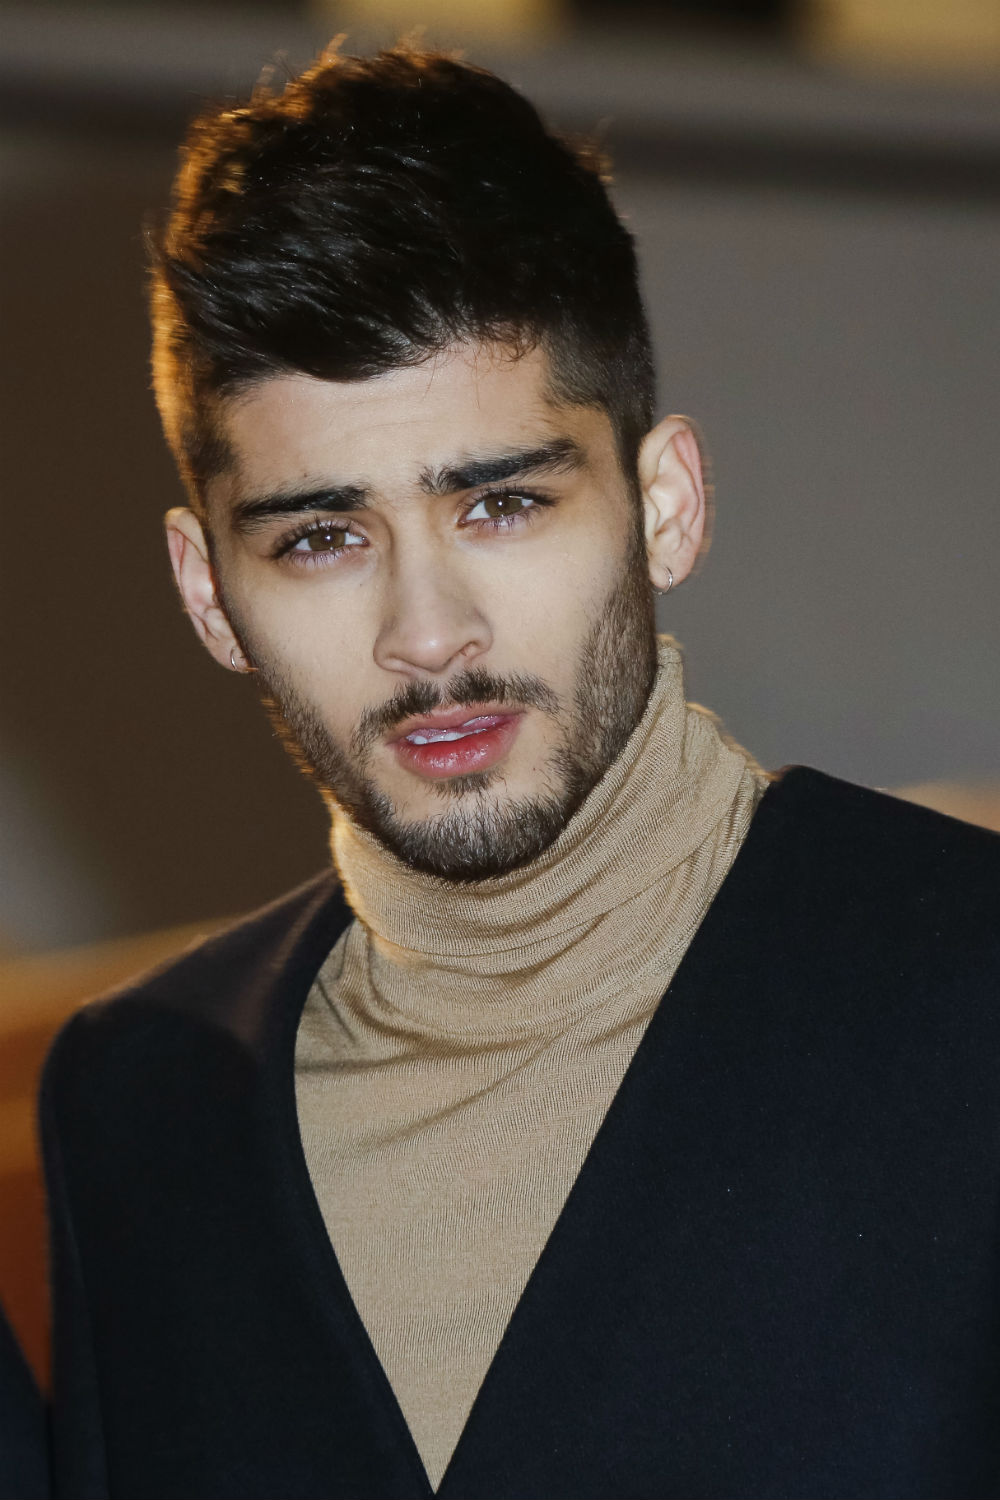 From The Boy Who Wouldnt Dance To Perrie Edwards Fiance The - Hairstyle zayn malik terbaru